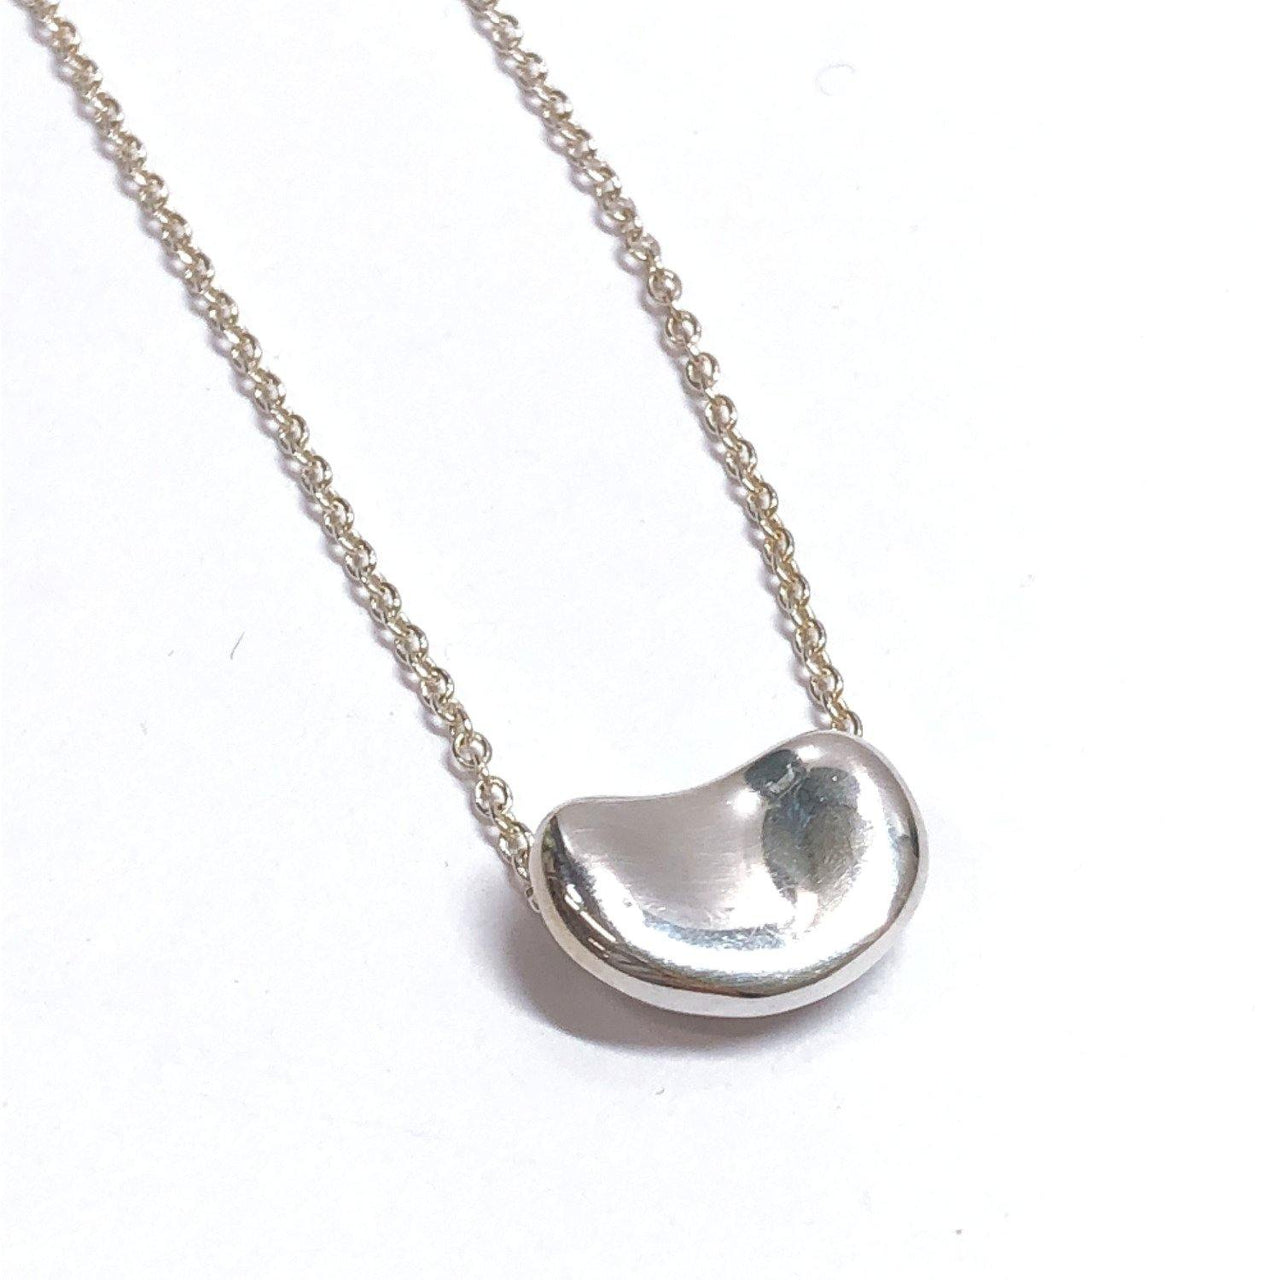 TIFFANY&Co. Necklace Beans Elsa Peretti Silver925 Silver Women Used - JP-BRANDS.com